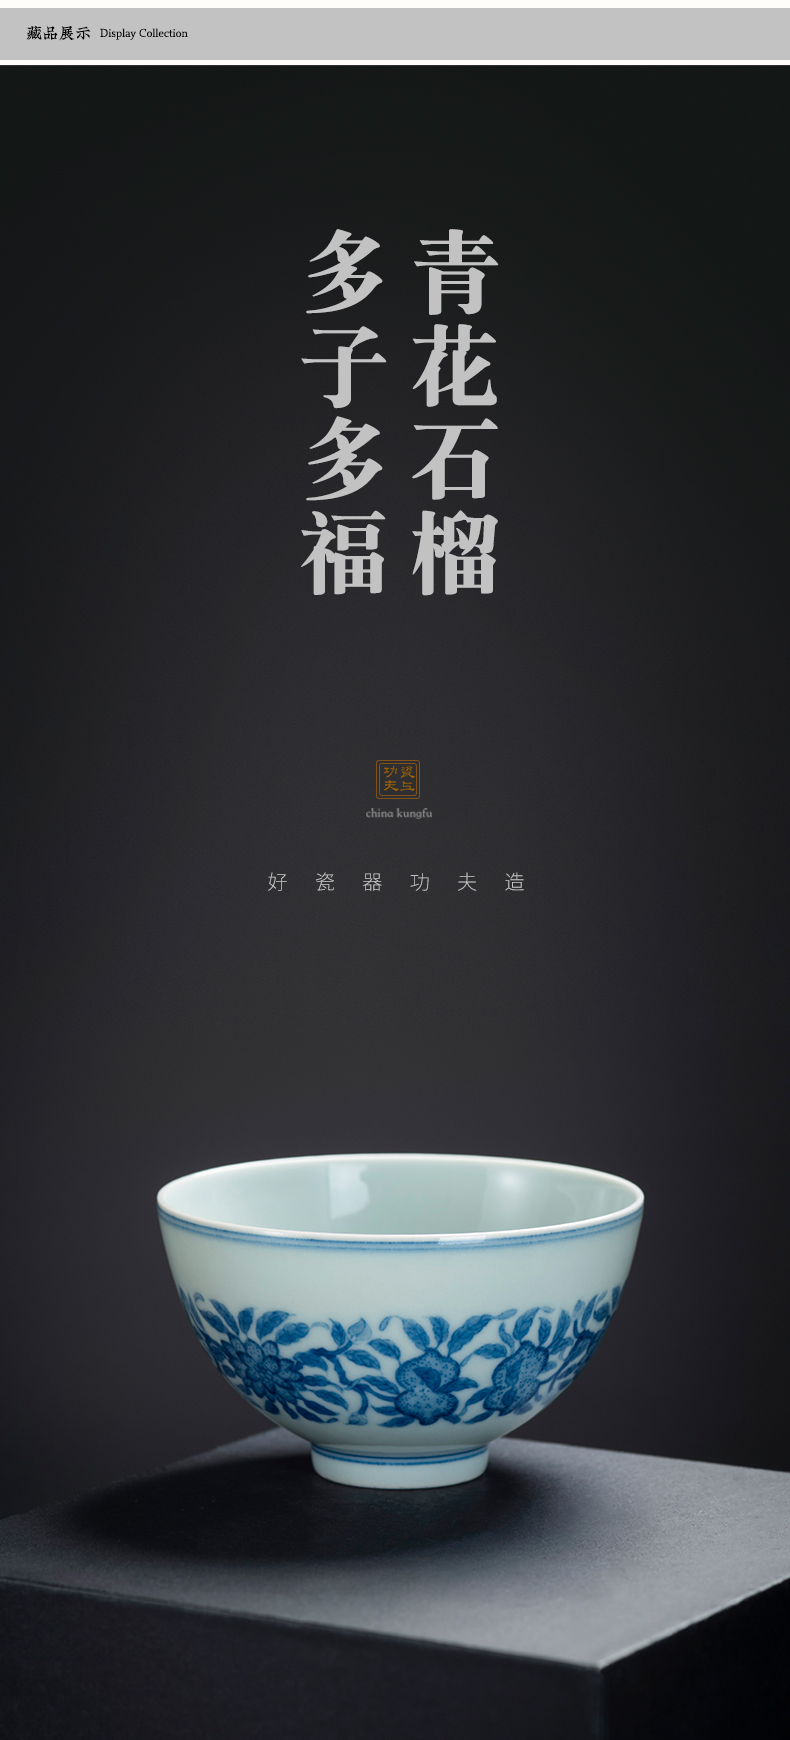 Porcelain jingdezhen blue and white Porcelain live on kung fu masters cup peach sample tea cup single CPU personal cup with a gift